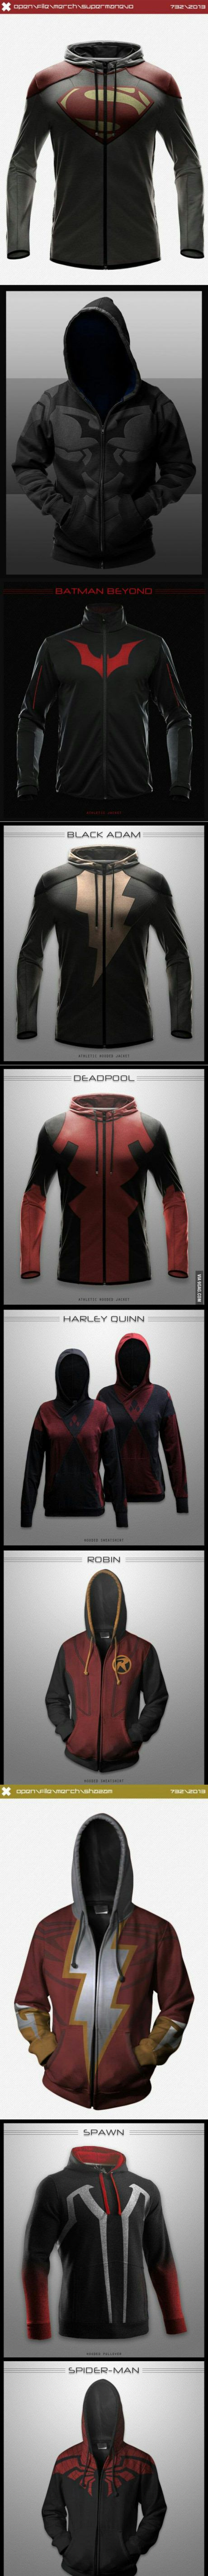 Where can I buy these? I live in South-Africa